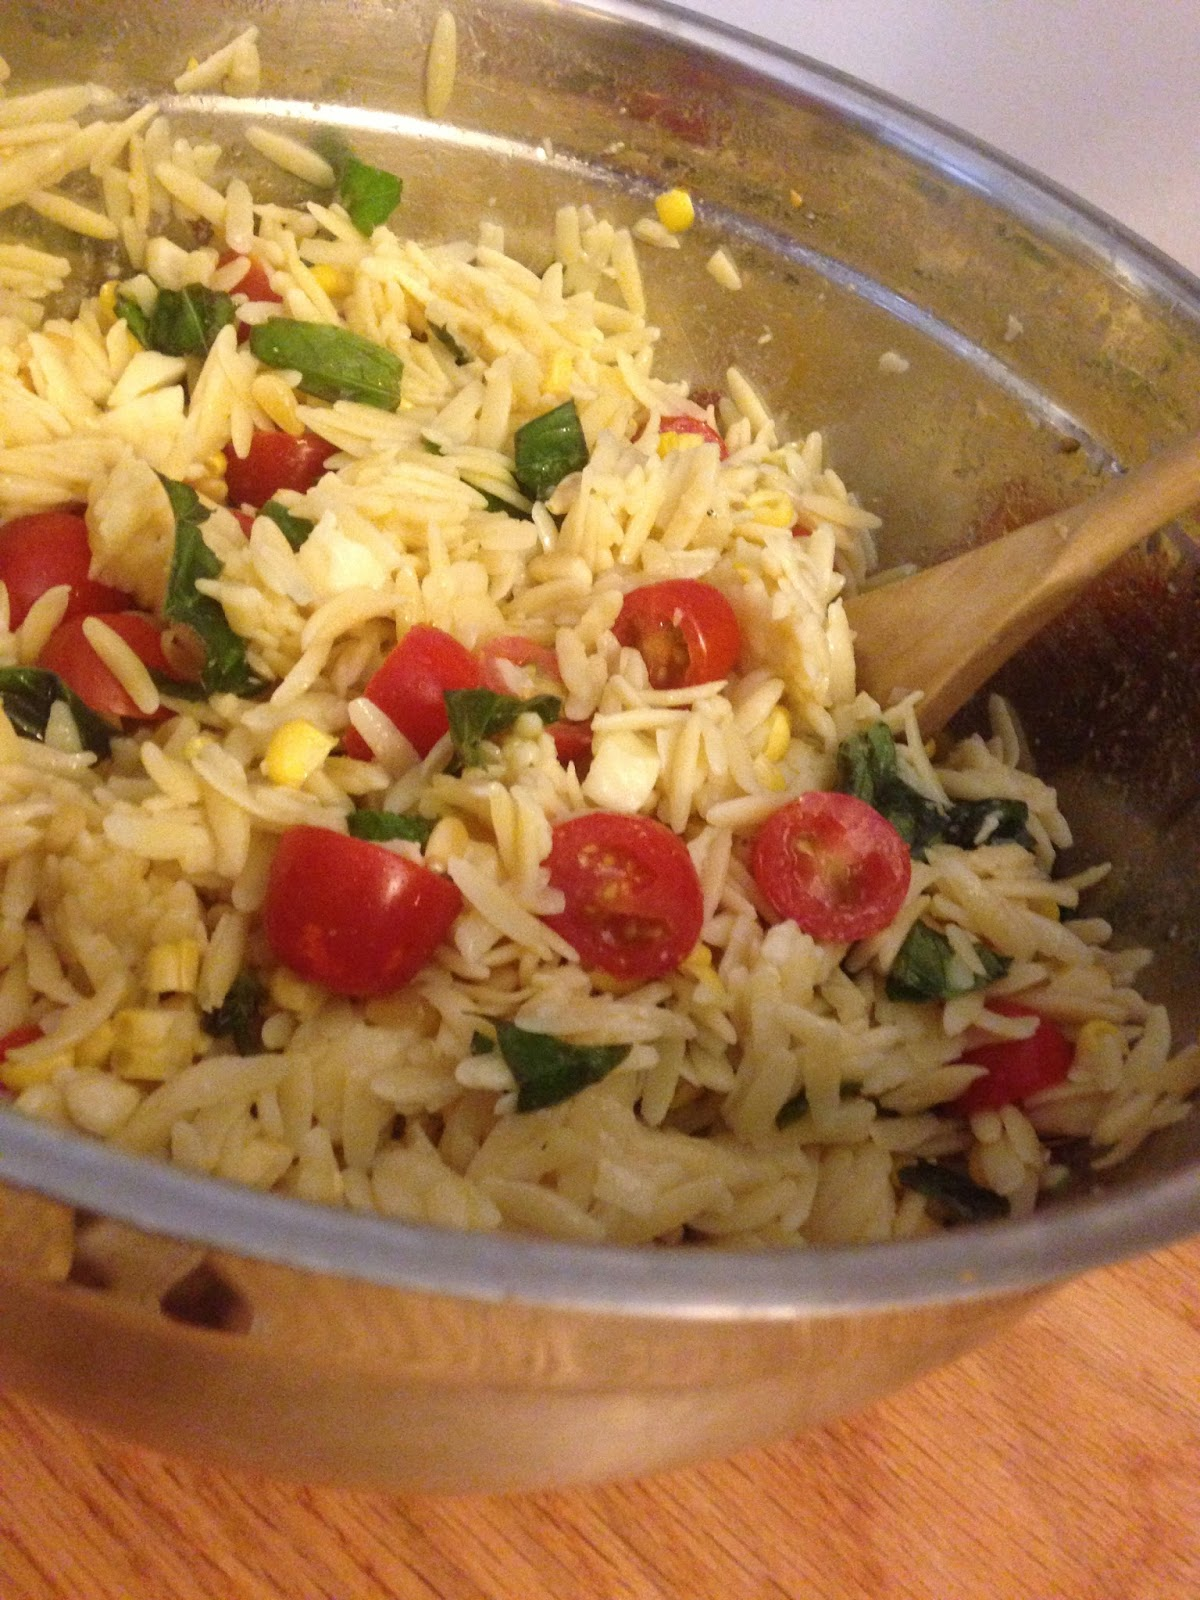 Summer Orzo Salad With a Side of RantMessymom